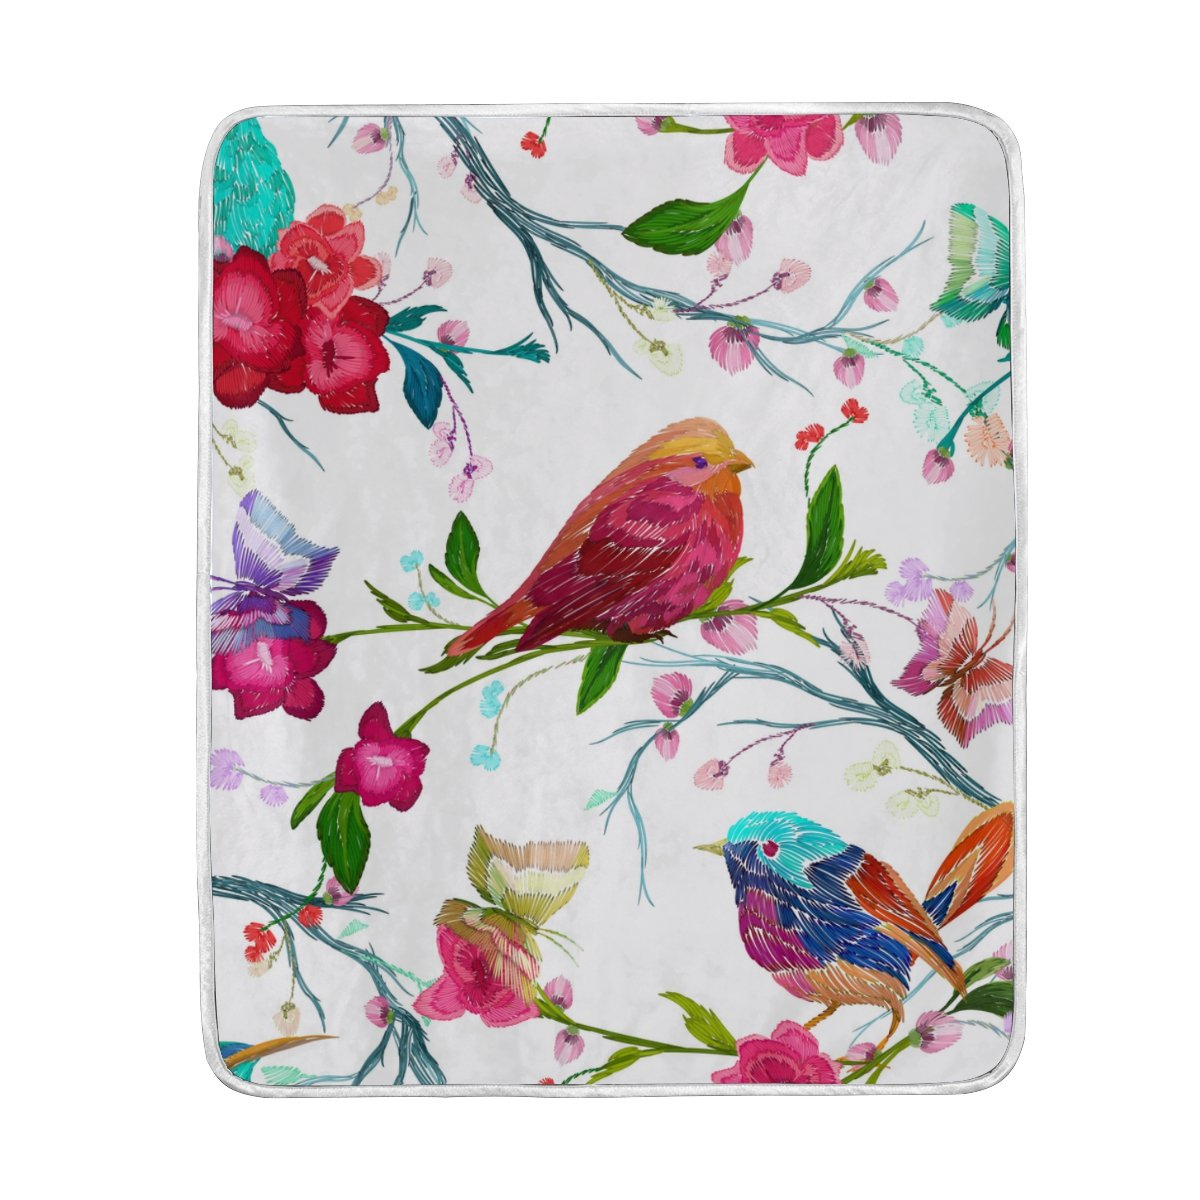 My Little Nest Warm Throw Blanket Vintage Bird Butterfly Lightweight MicrofiberSoft Blanket Everyday Use for Bed Couch Sofa 50'' x 60''